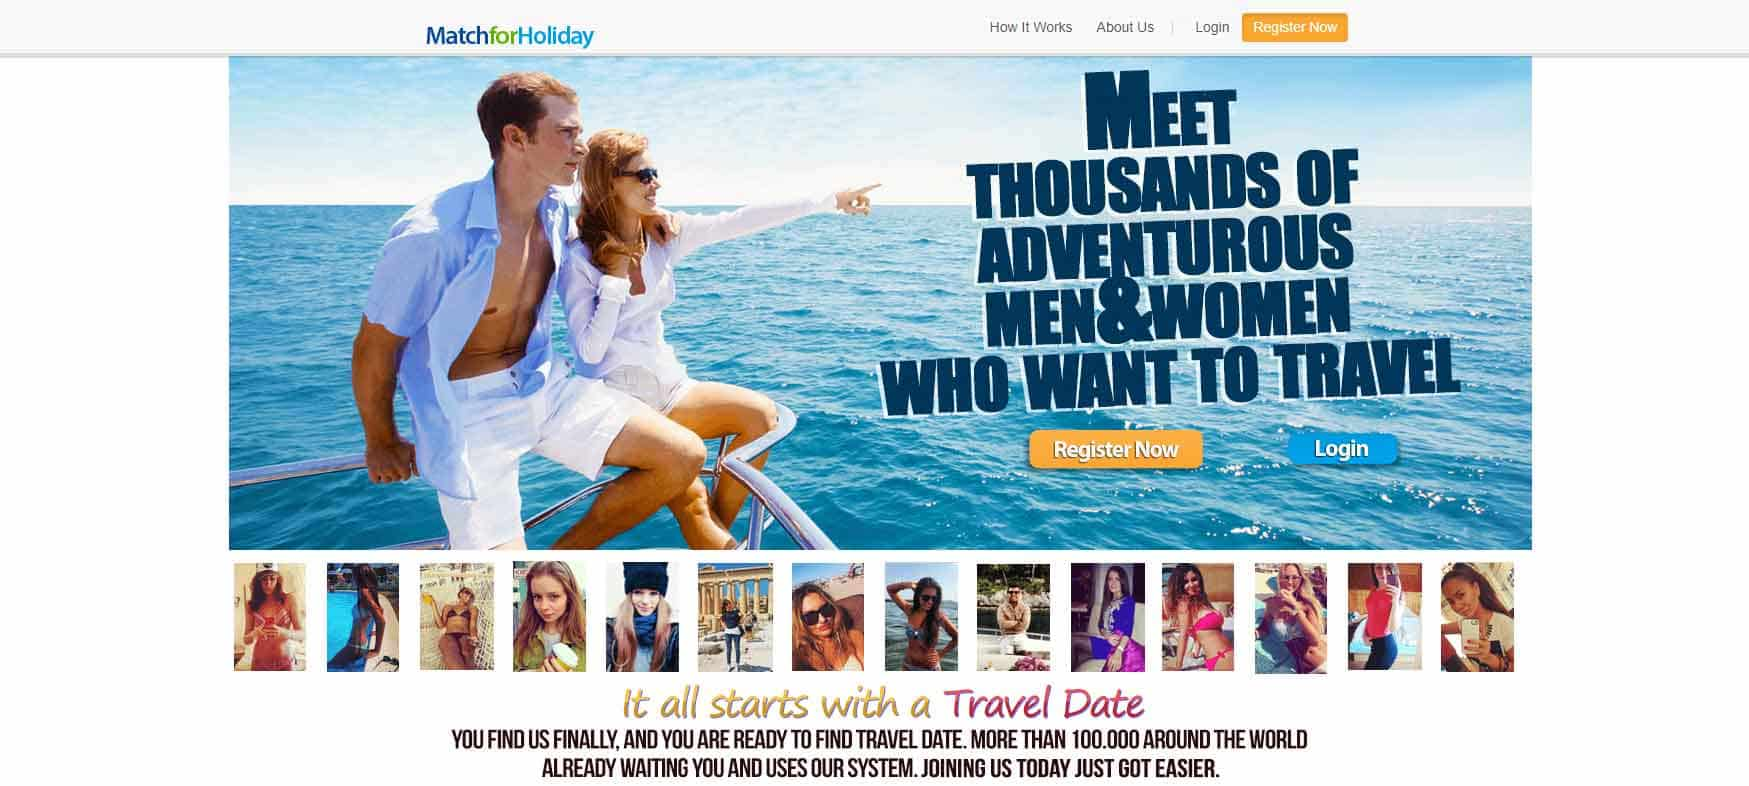 Match for Holiday home page image for international travel and dating site review